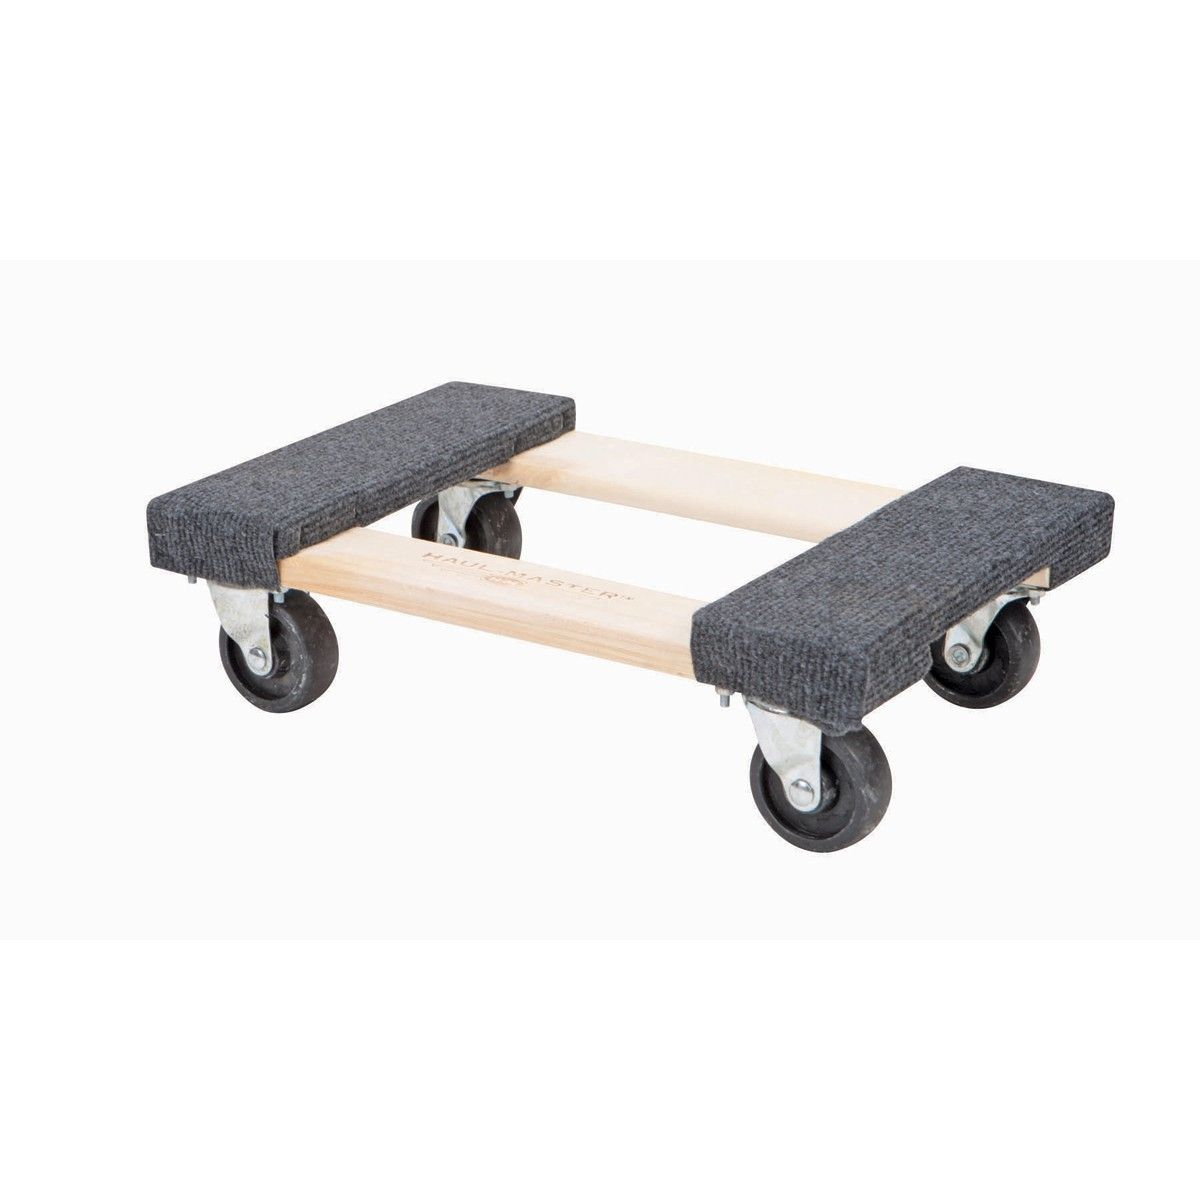 4 Wheel Moving Dolly Excellent For Moving Large Peices Of